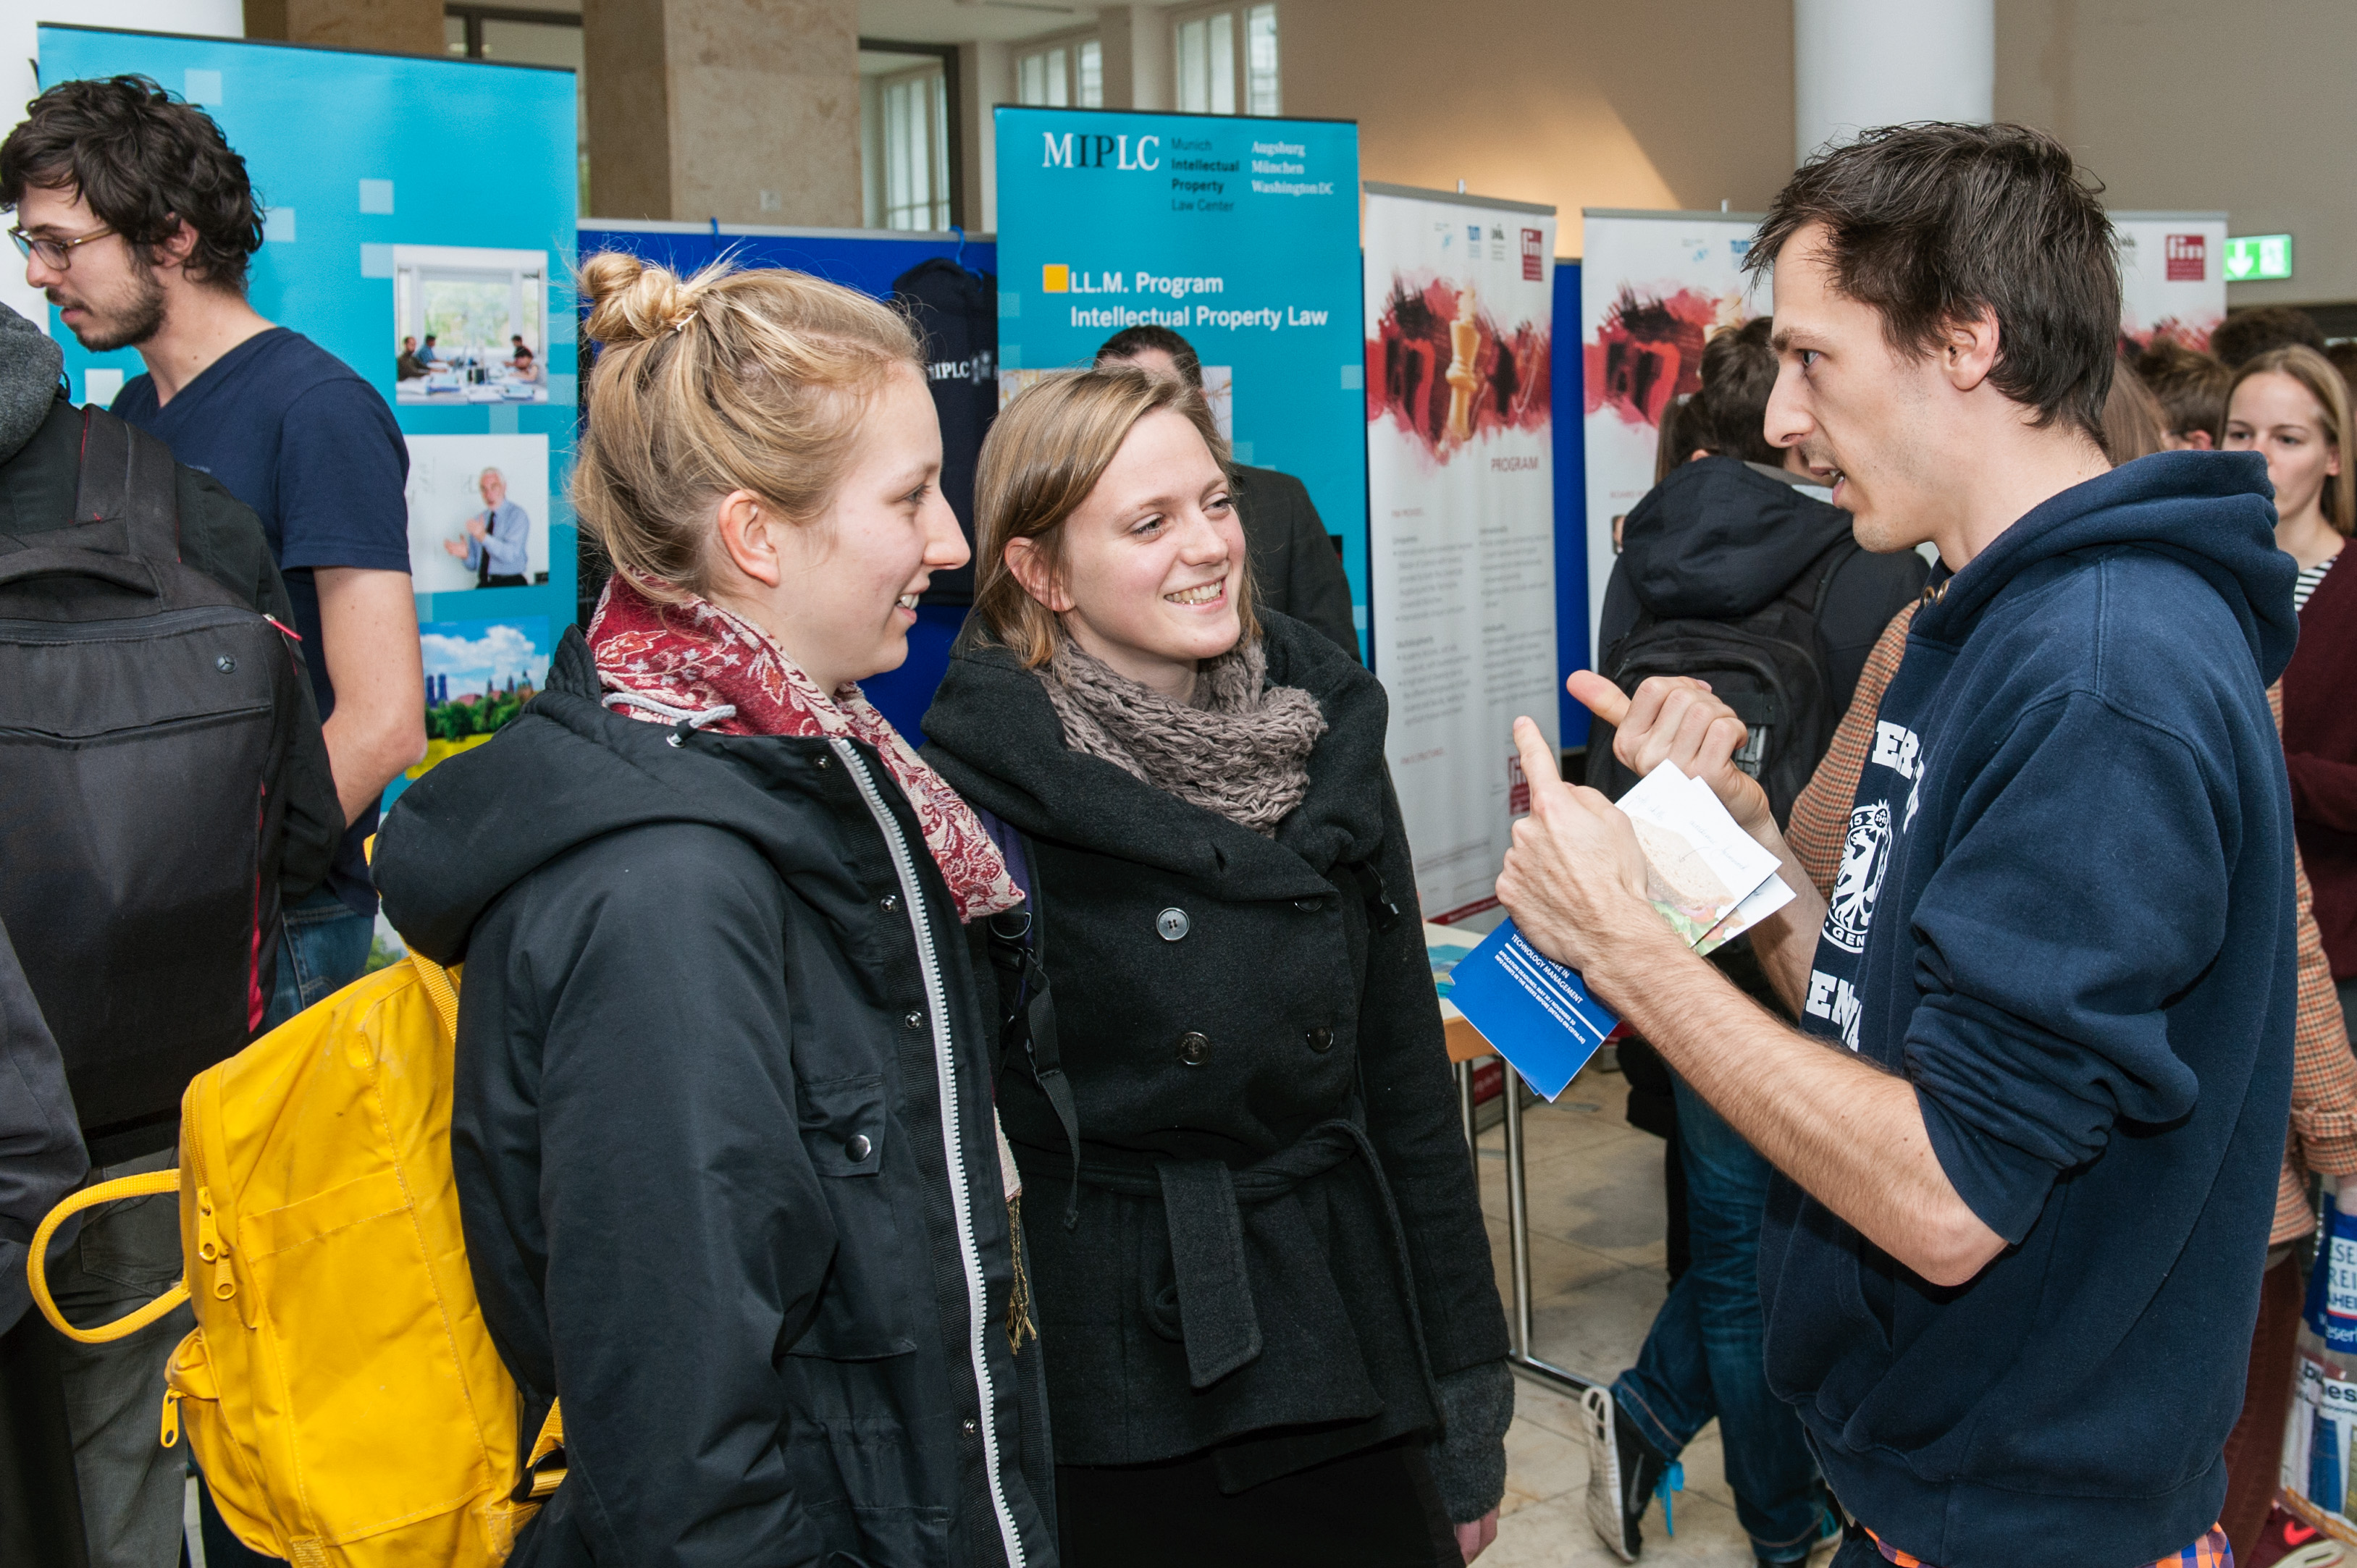 Many interested students are looking for information at the booths (Photo: Ulrich Benz)